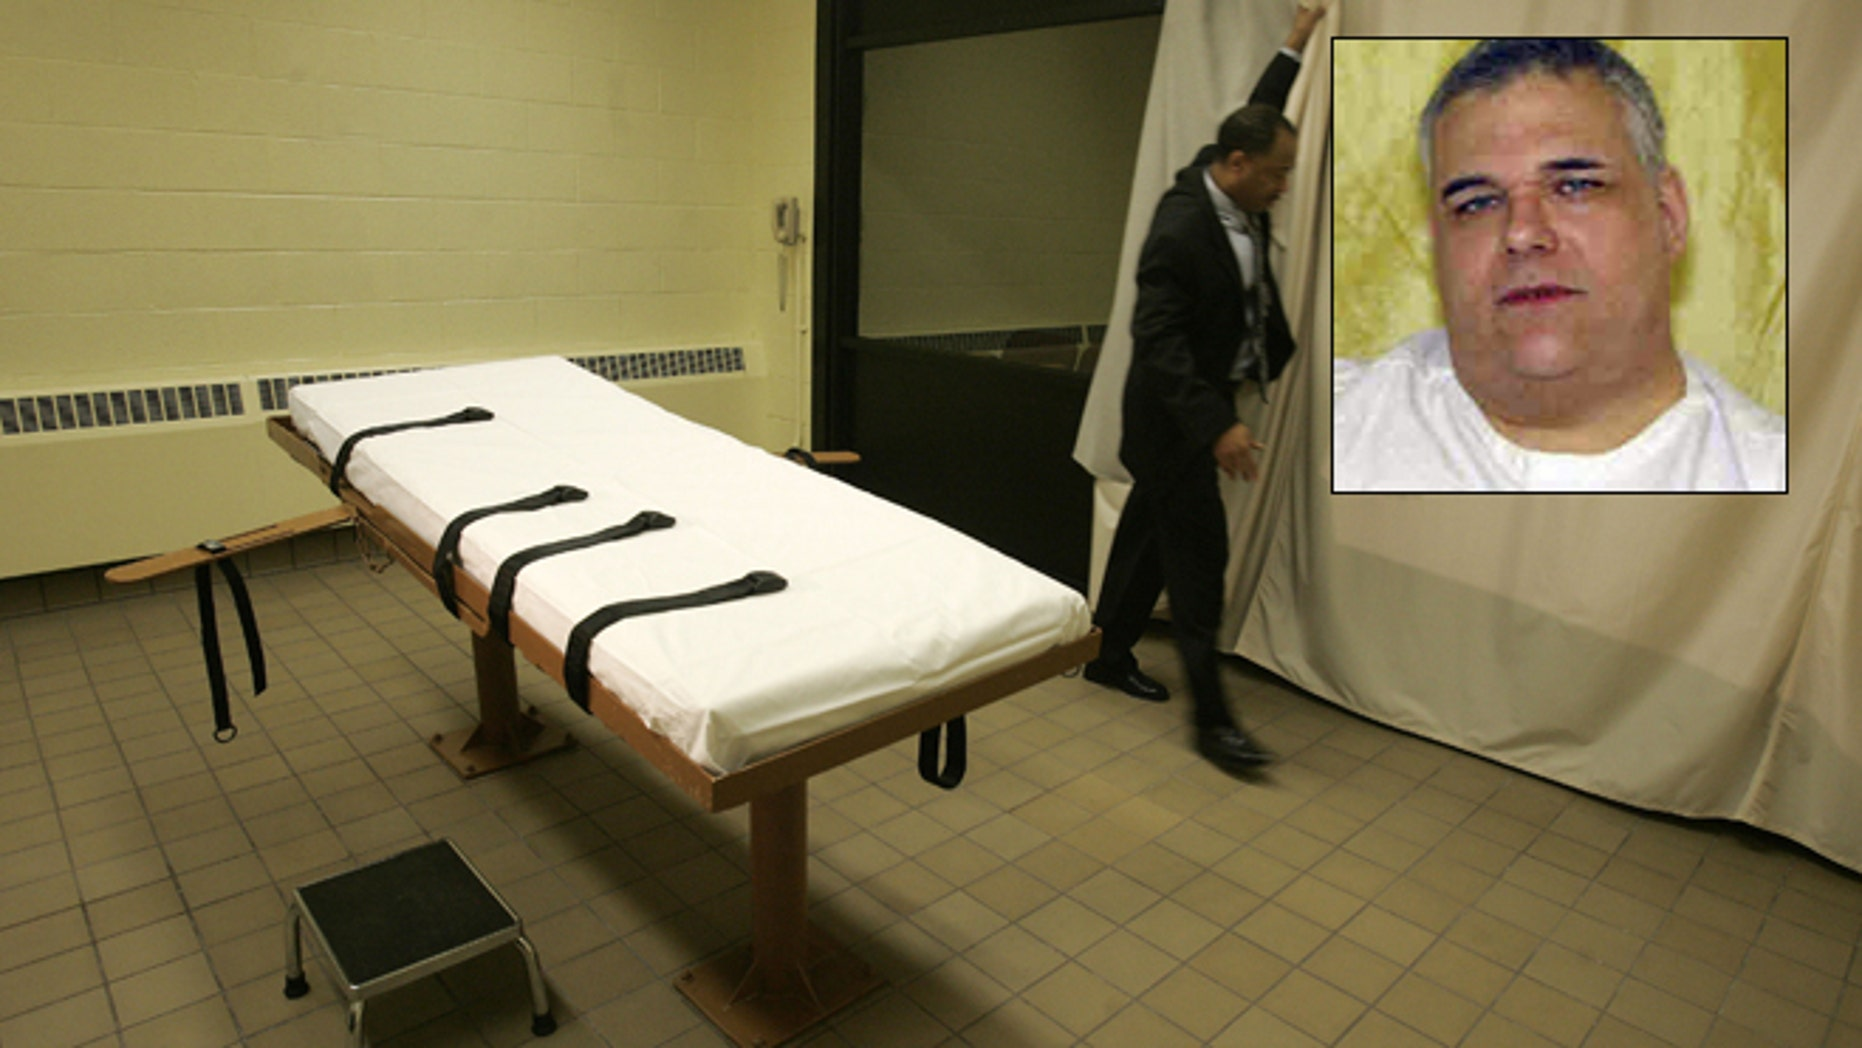 Ronald Post. Post is scheduled to executed Jan. 16, 2013, for the 1983 shooting death of a hotel desk clerk.